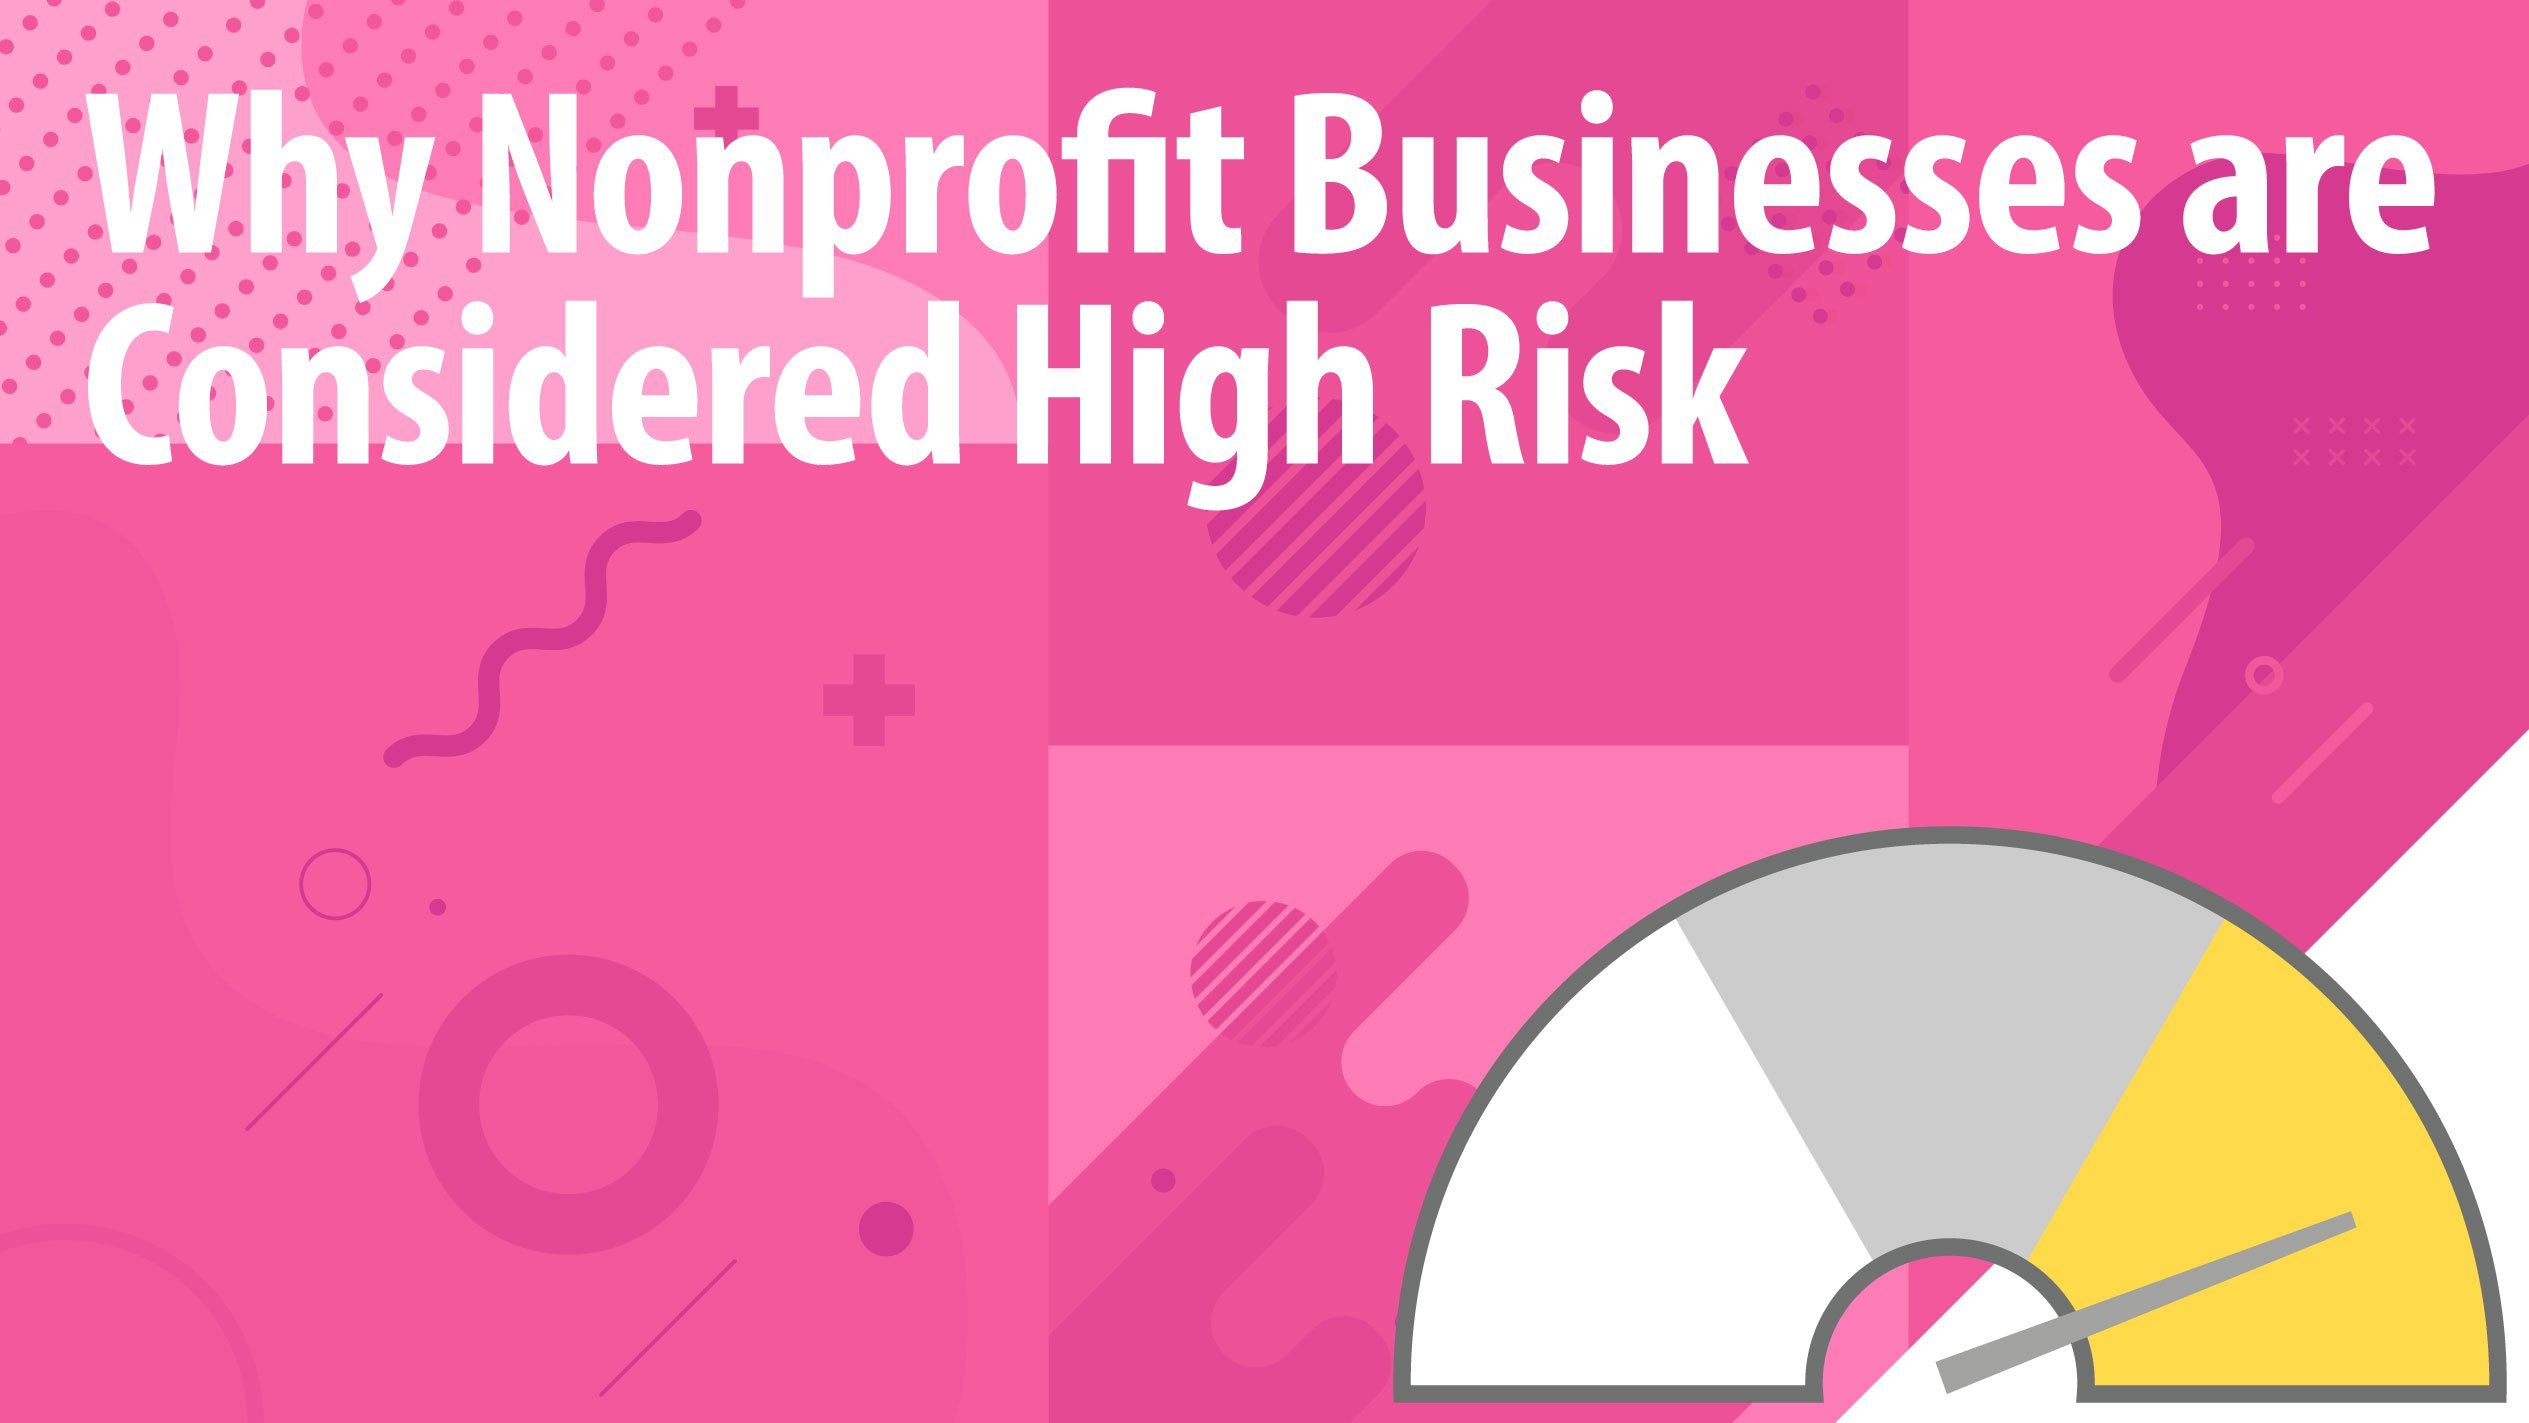 Why Nonprofit Businesses are Considered High Risk